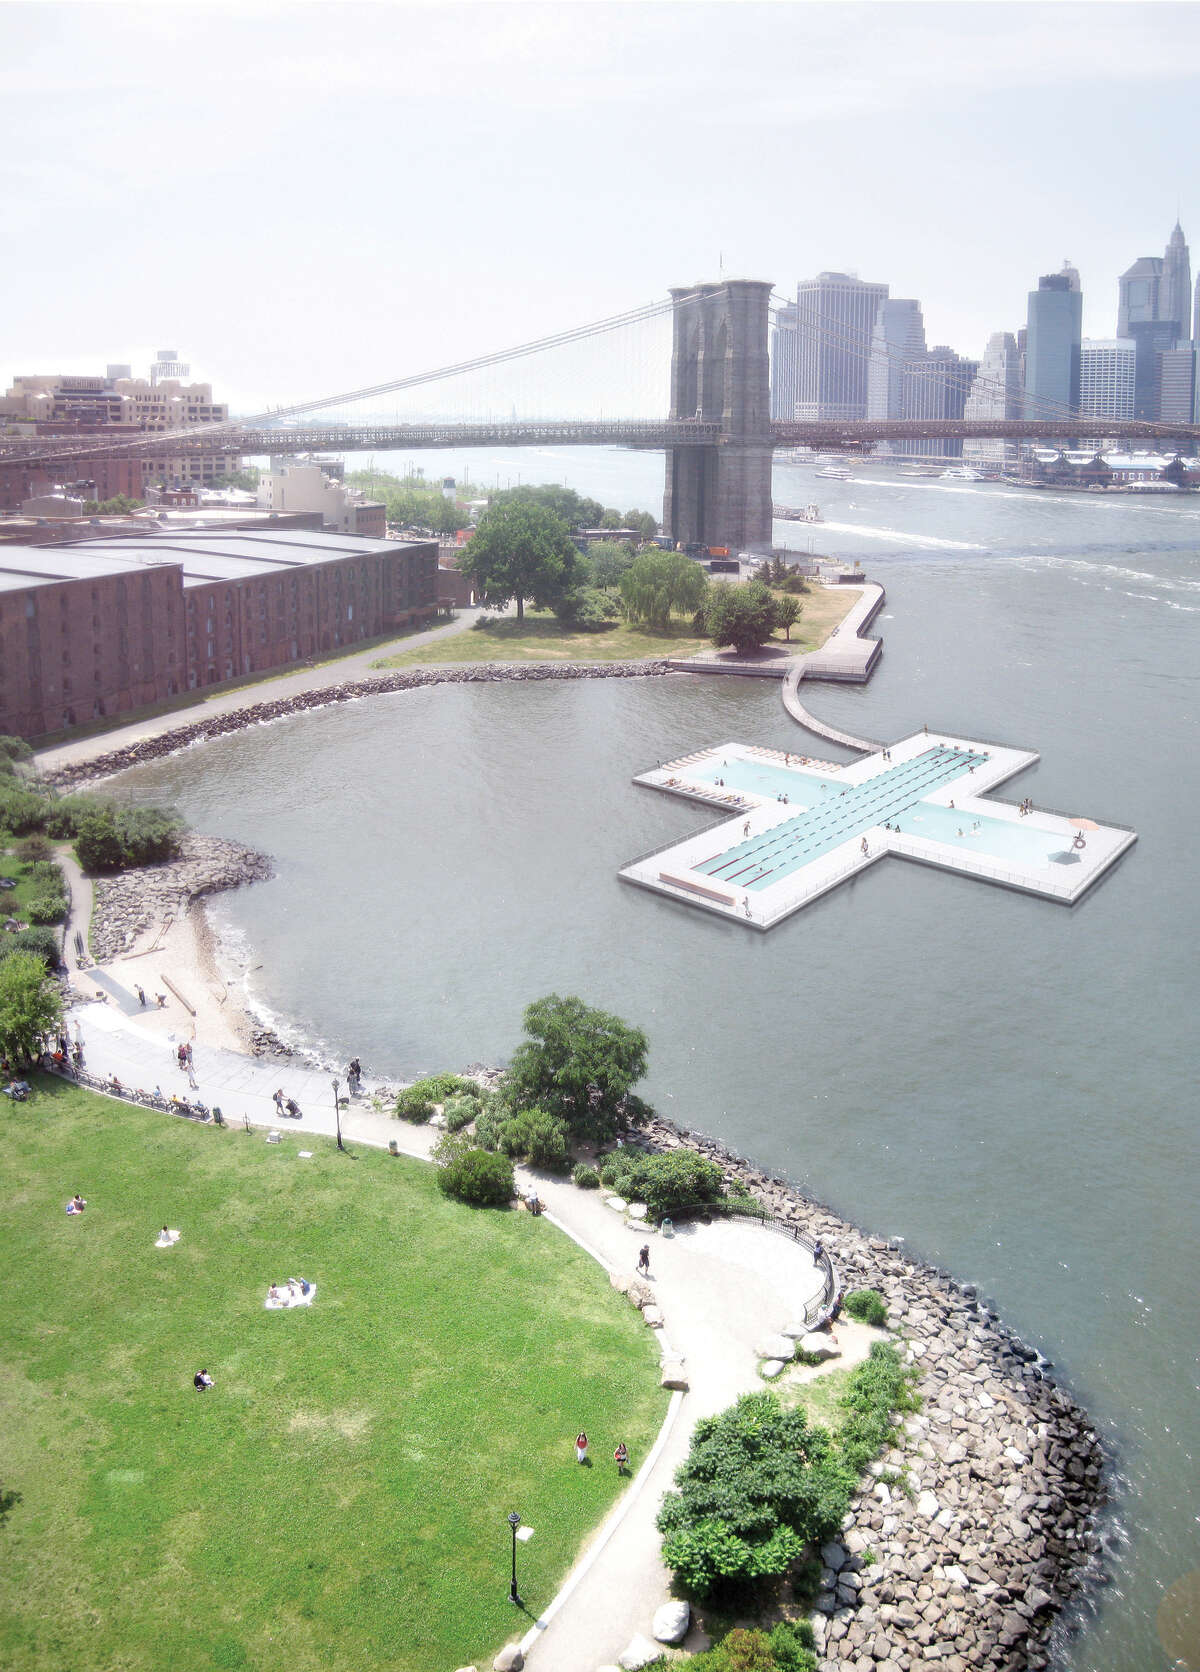 A rendering for + Pool, an idea for a water-filtering floating pool in New York's waterways. The company pitching the idea claims it will help filter the contaminants in the river and provide clean, swimmable water for residents.